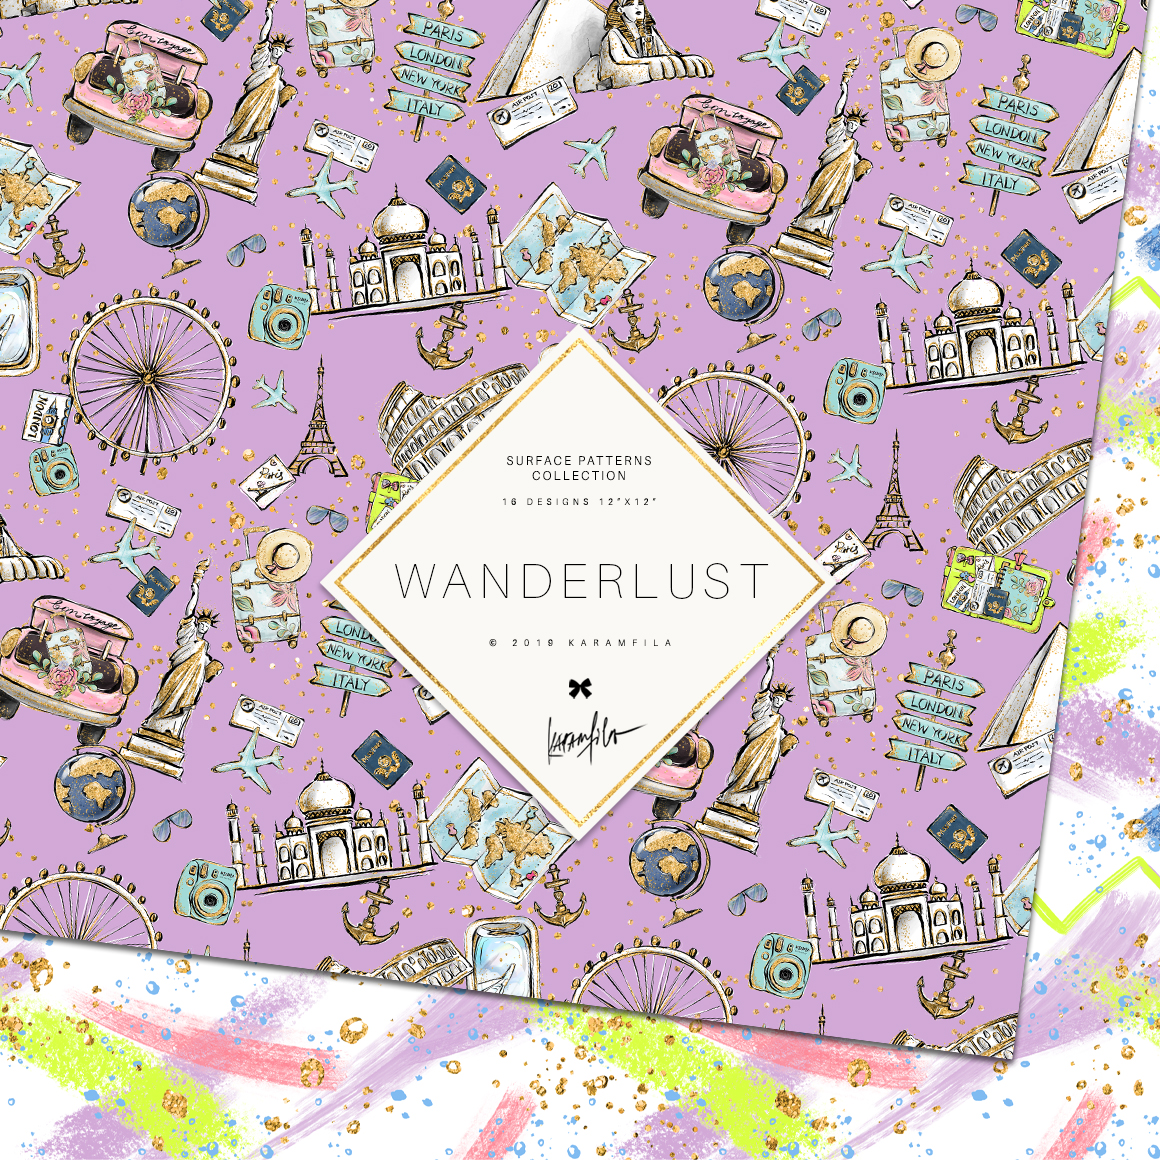 Wanderlust Patterns example image 6